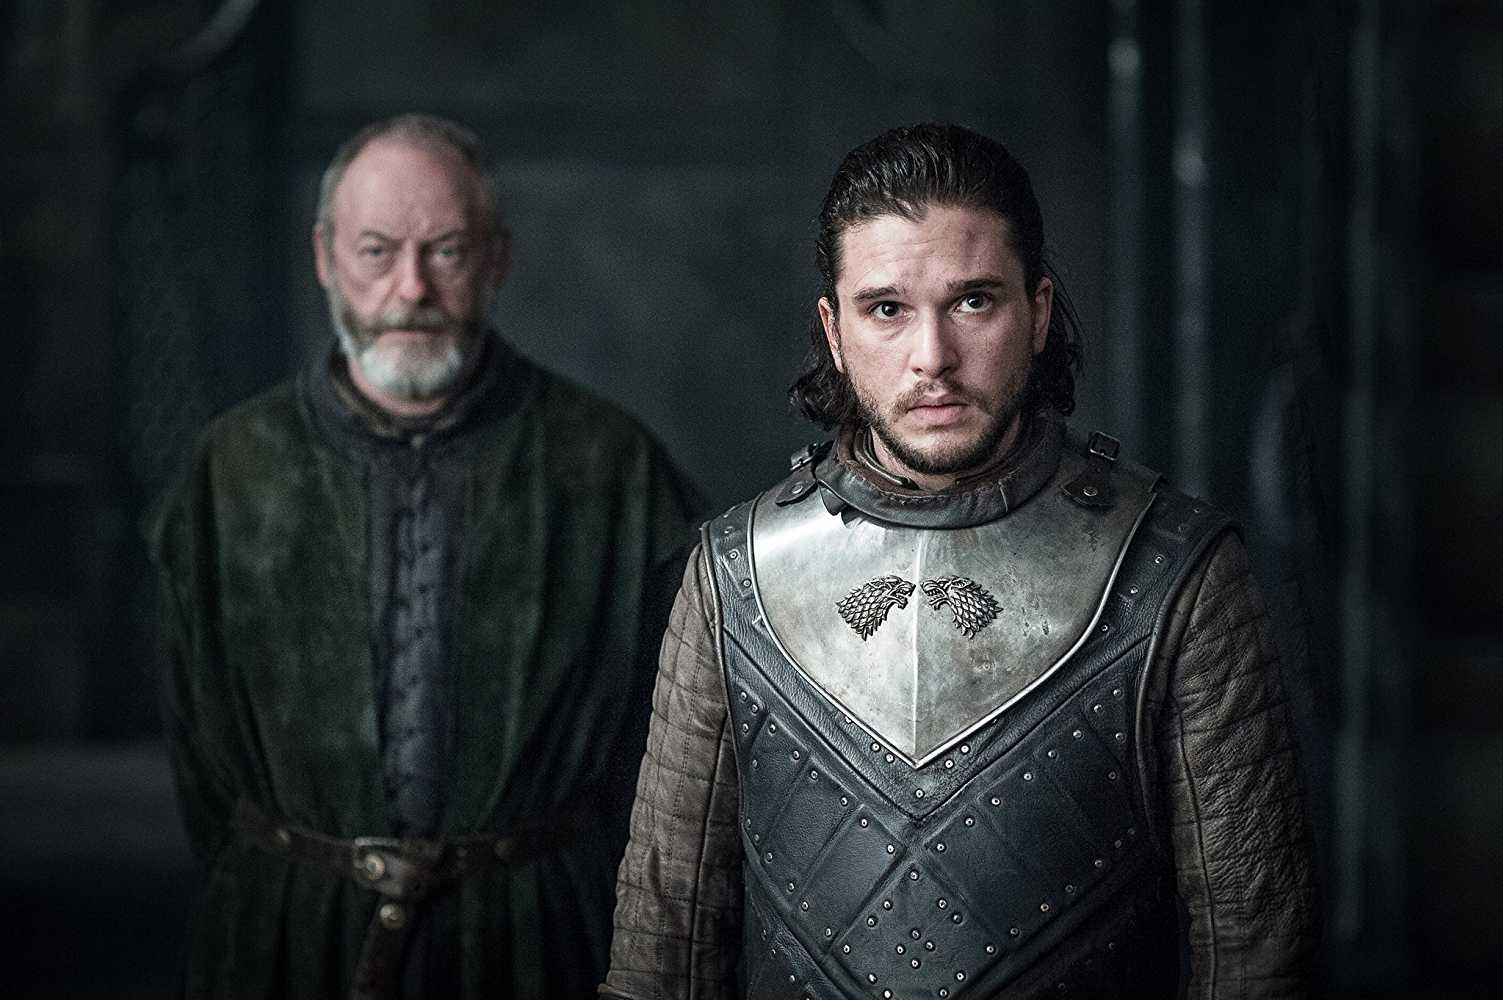 Jon Snow is easily the most suitable one to carry on Jon Arryn's name (IMDb)